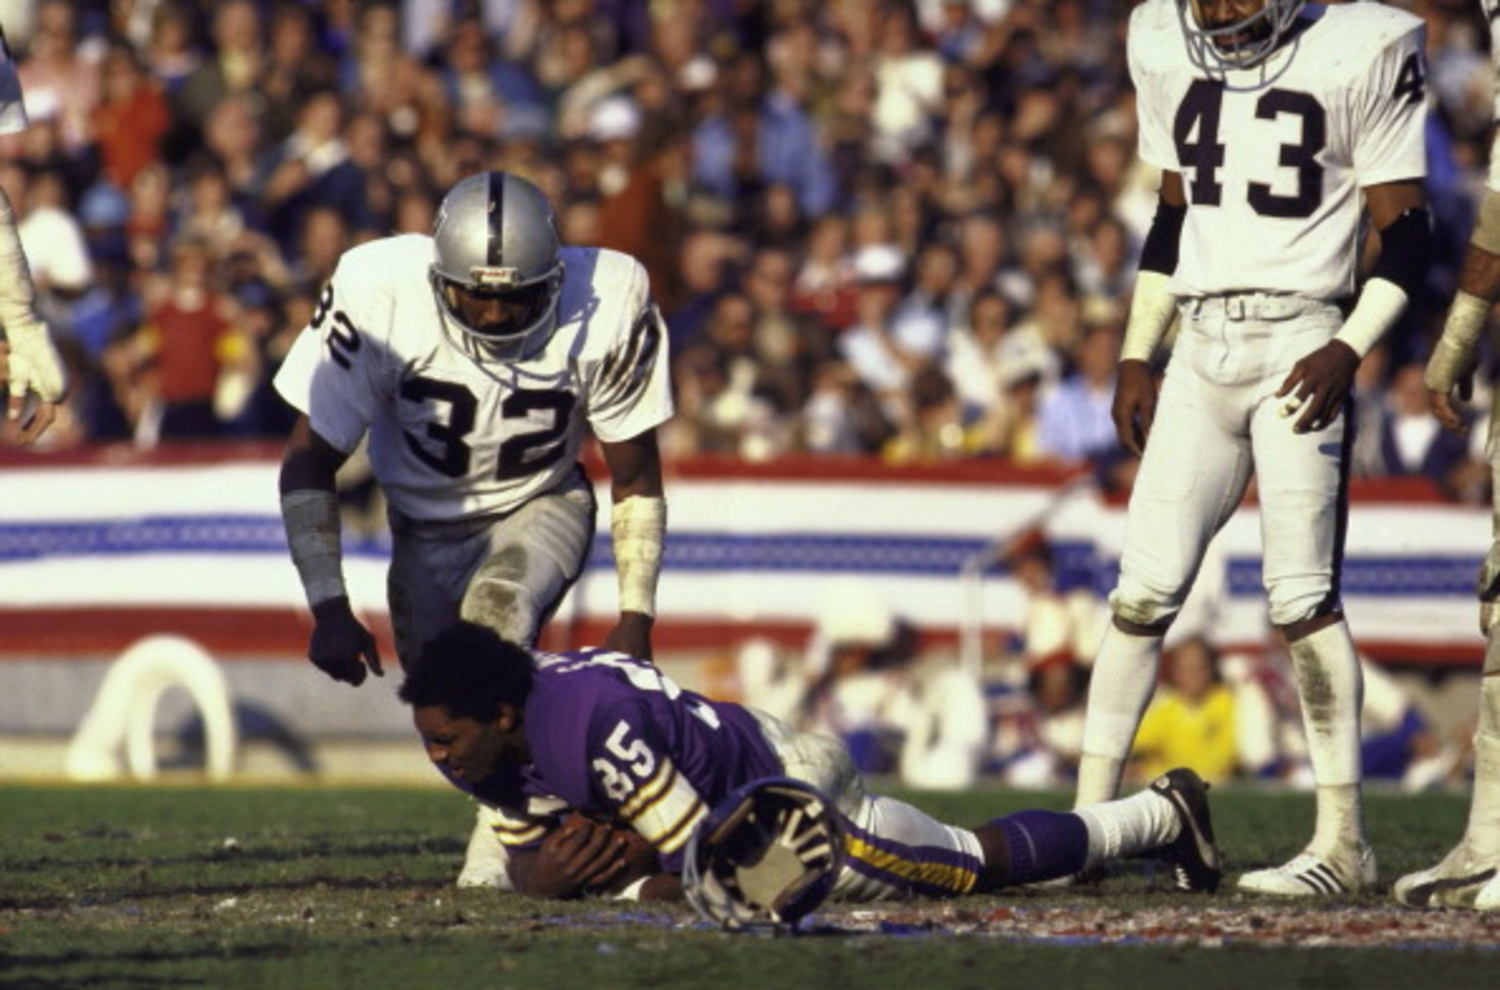 The Tragic Death of Oakland Raiders Great and Hard-Hitting Safety Jack Tatum